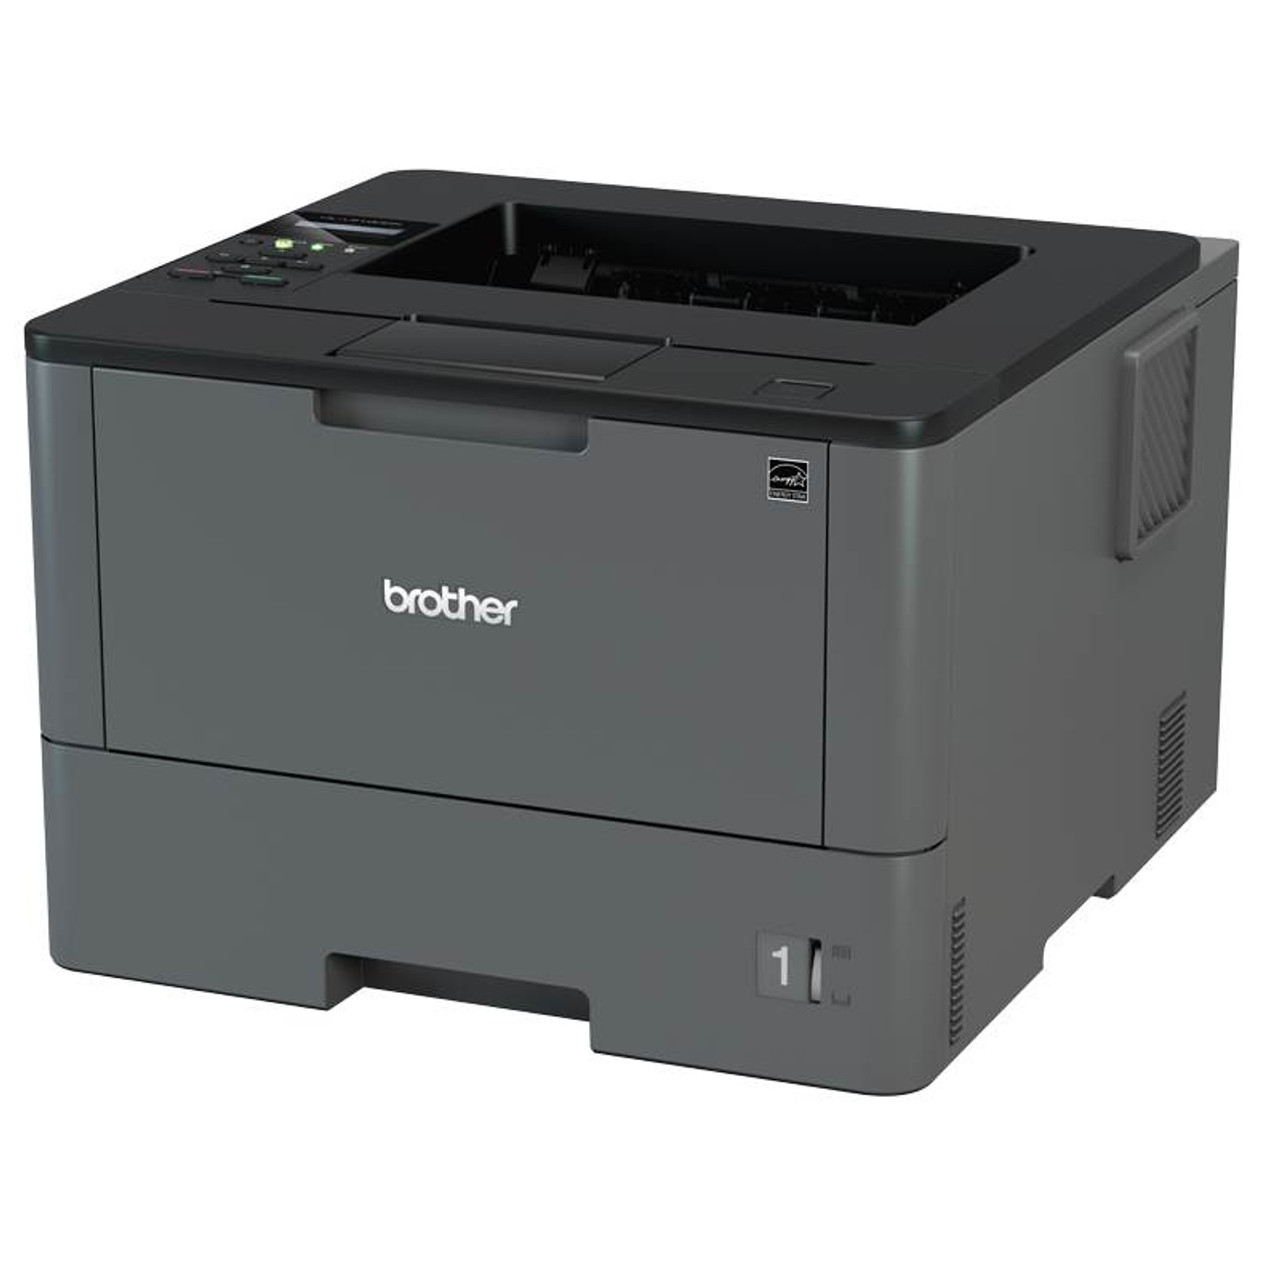 Product image for Brother HL-L5100DN Monochrome Laser Printer | CX Computer Superstore